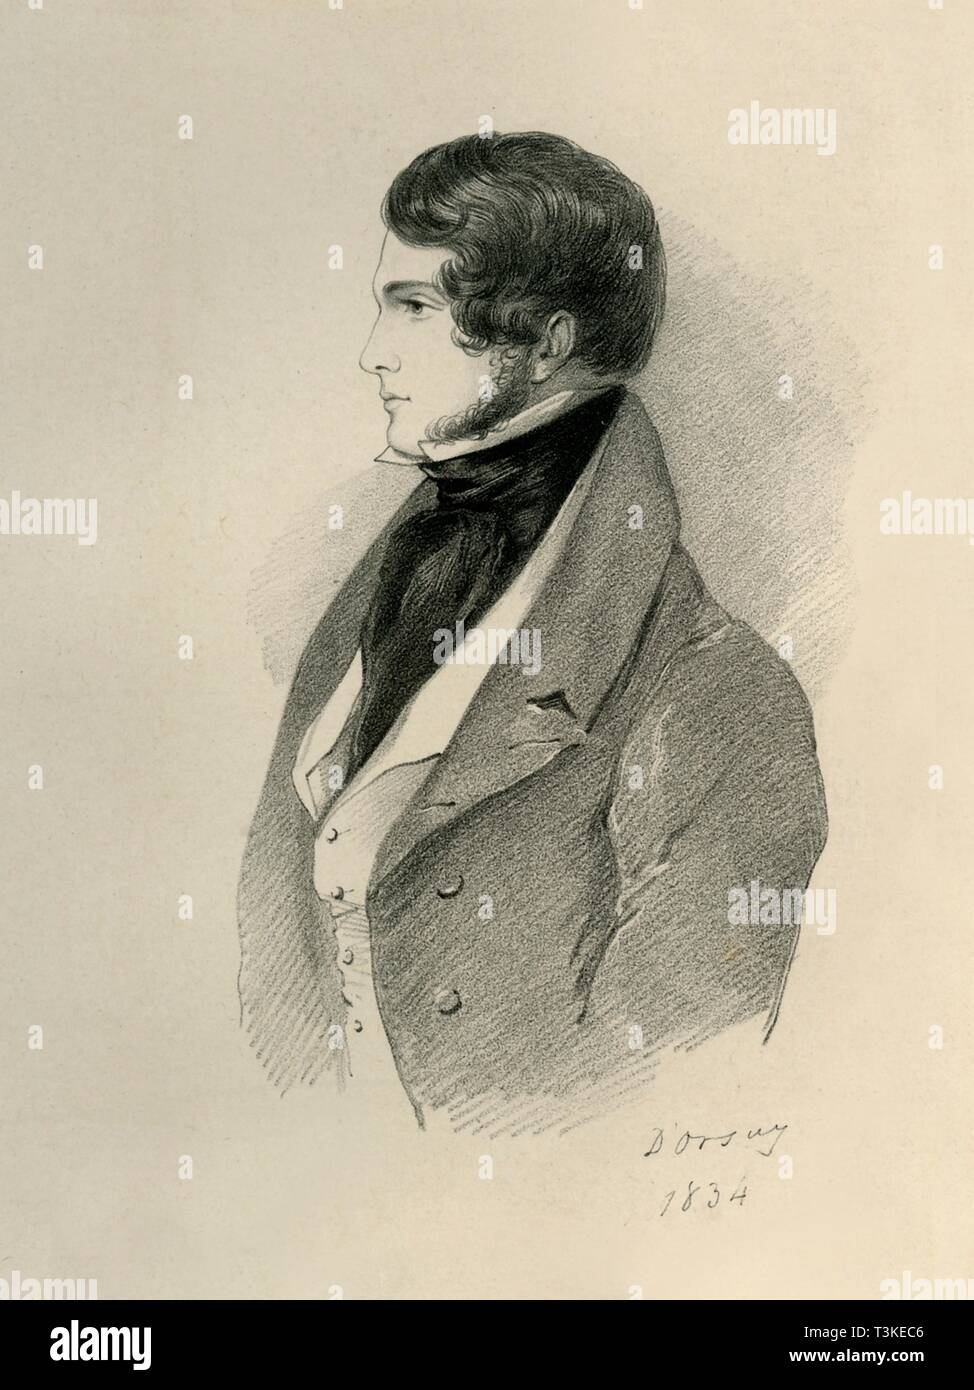 L. Gilmour, 1834. Creator: Alfred d'Orsay. - Stock Image